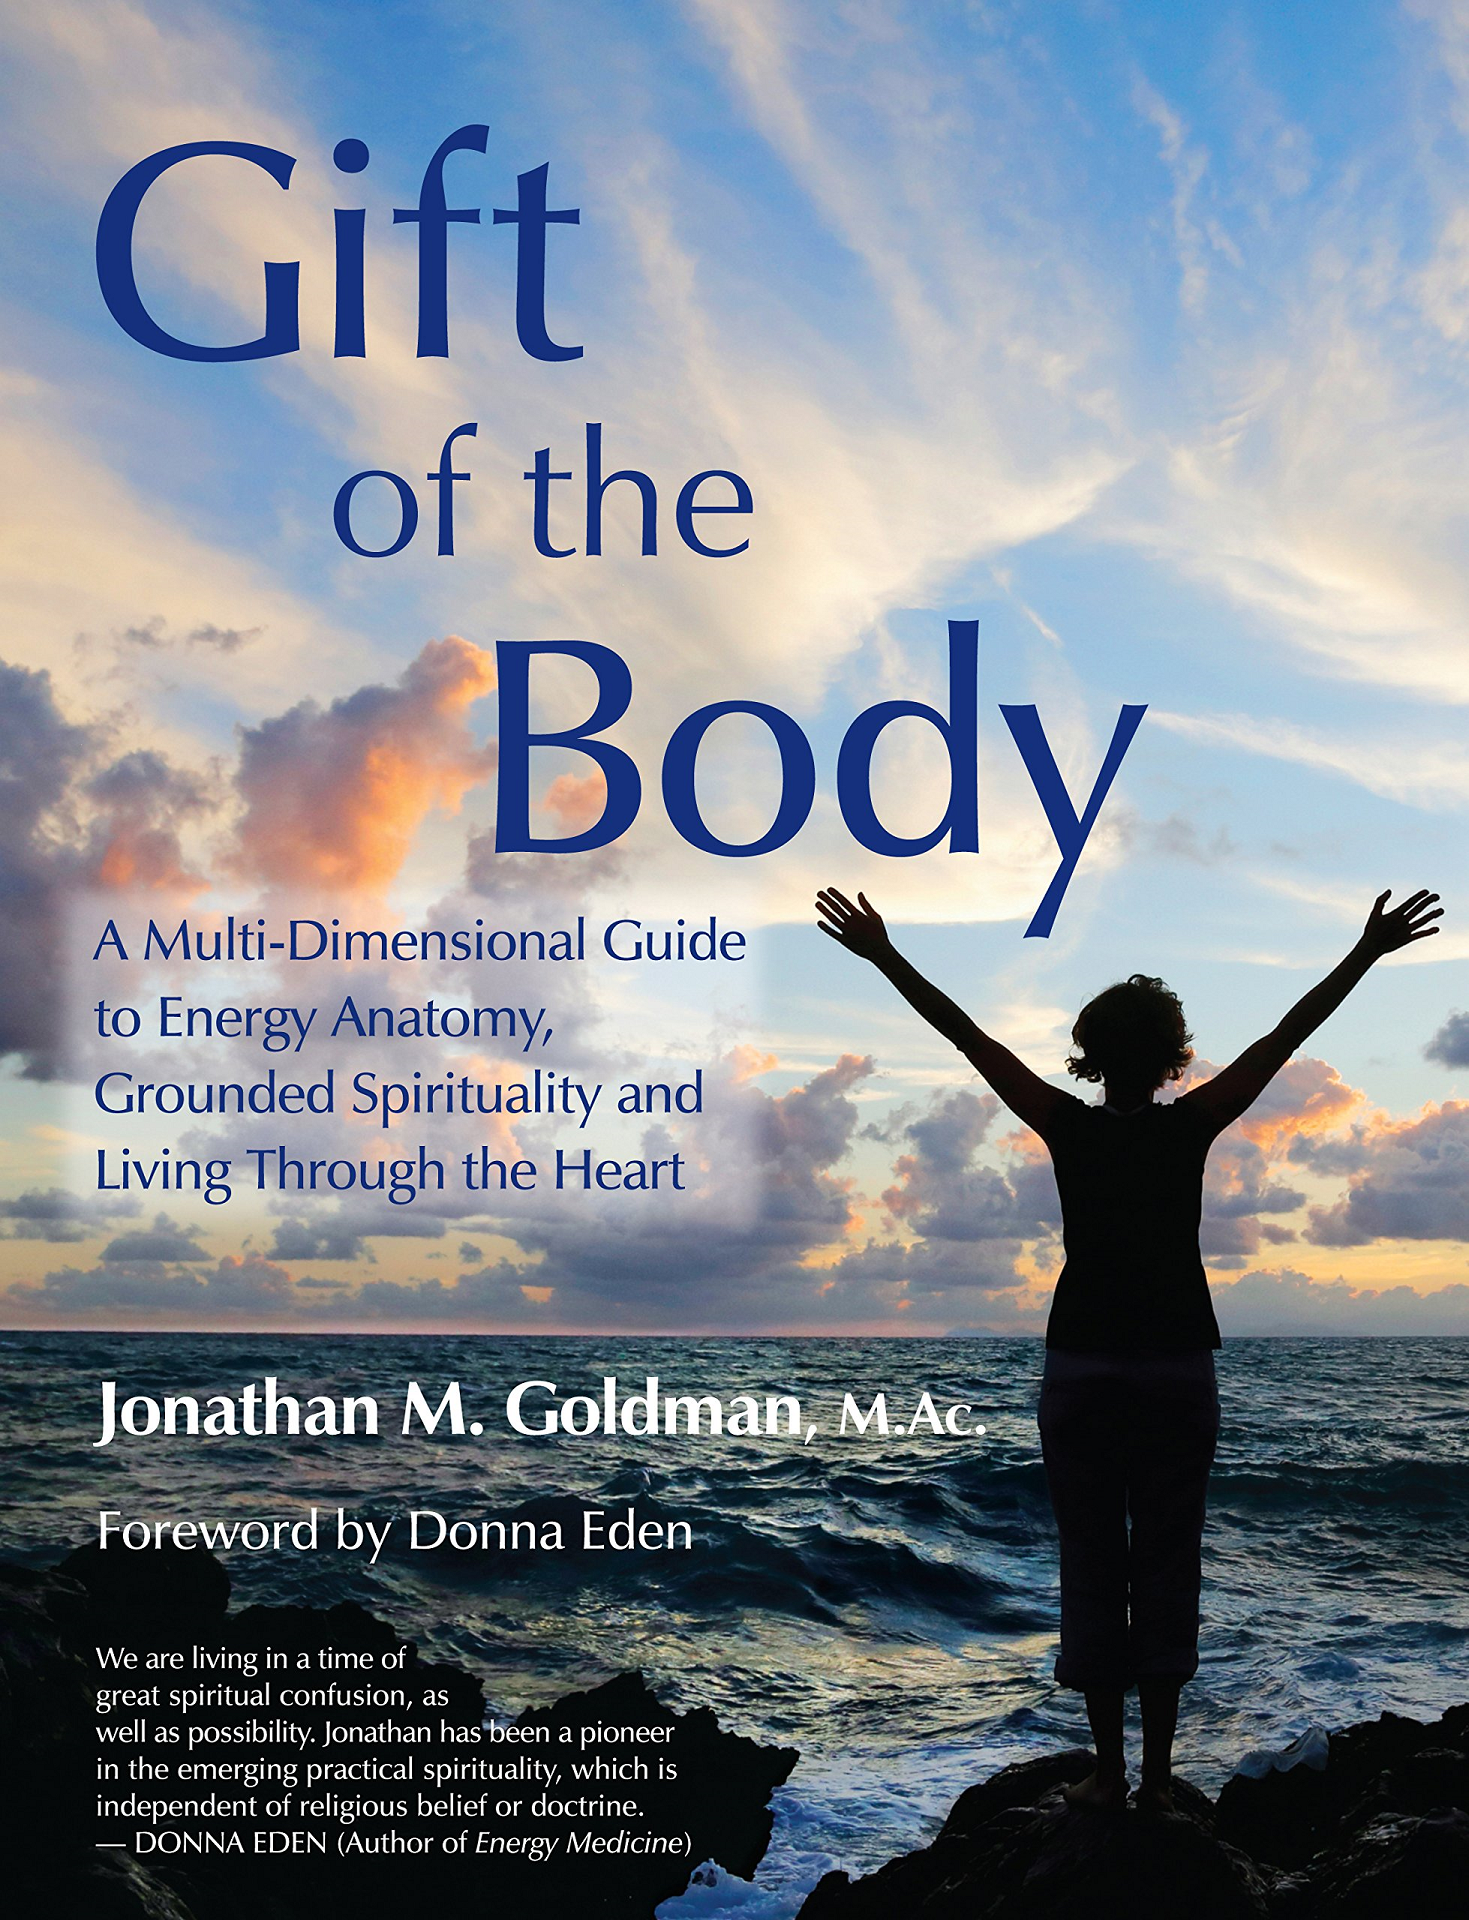 GIFT OF THE BODYBY JONATHAN GOLDMAN - An experiential, practical and transformational textbook for the adventure school of your life.